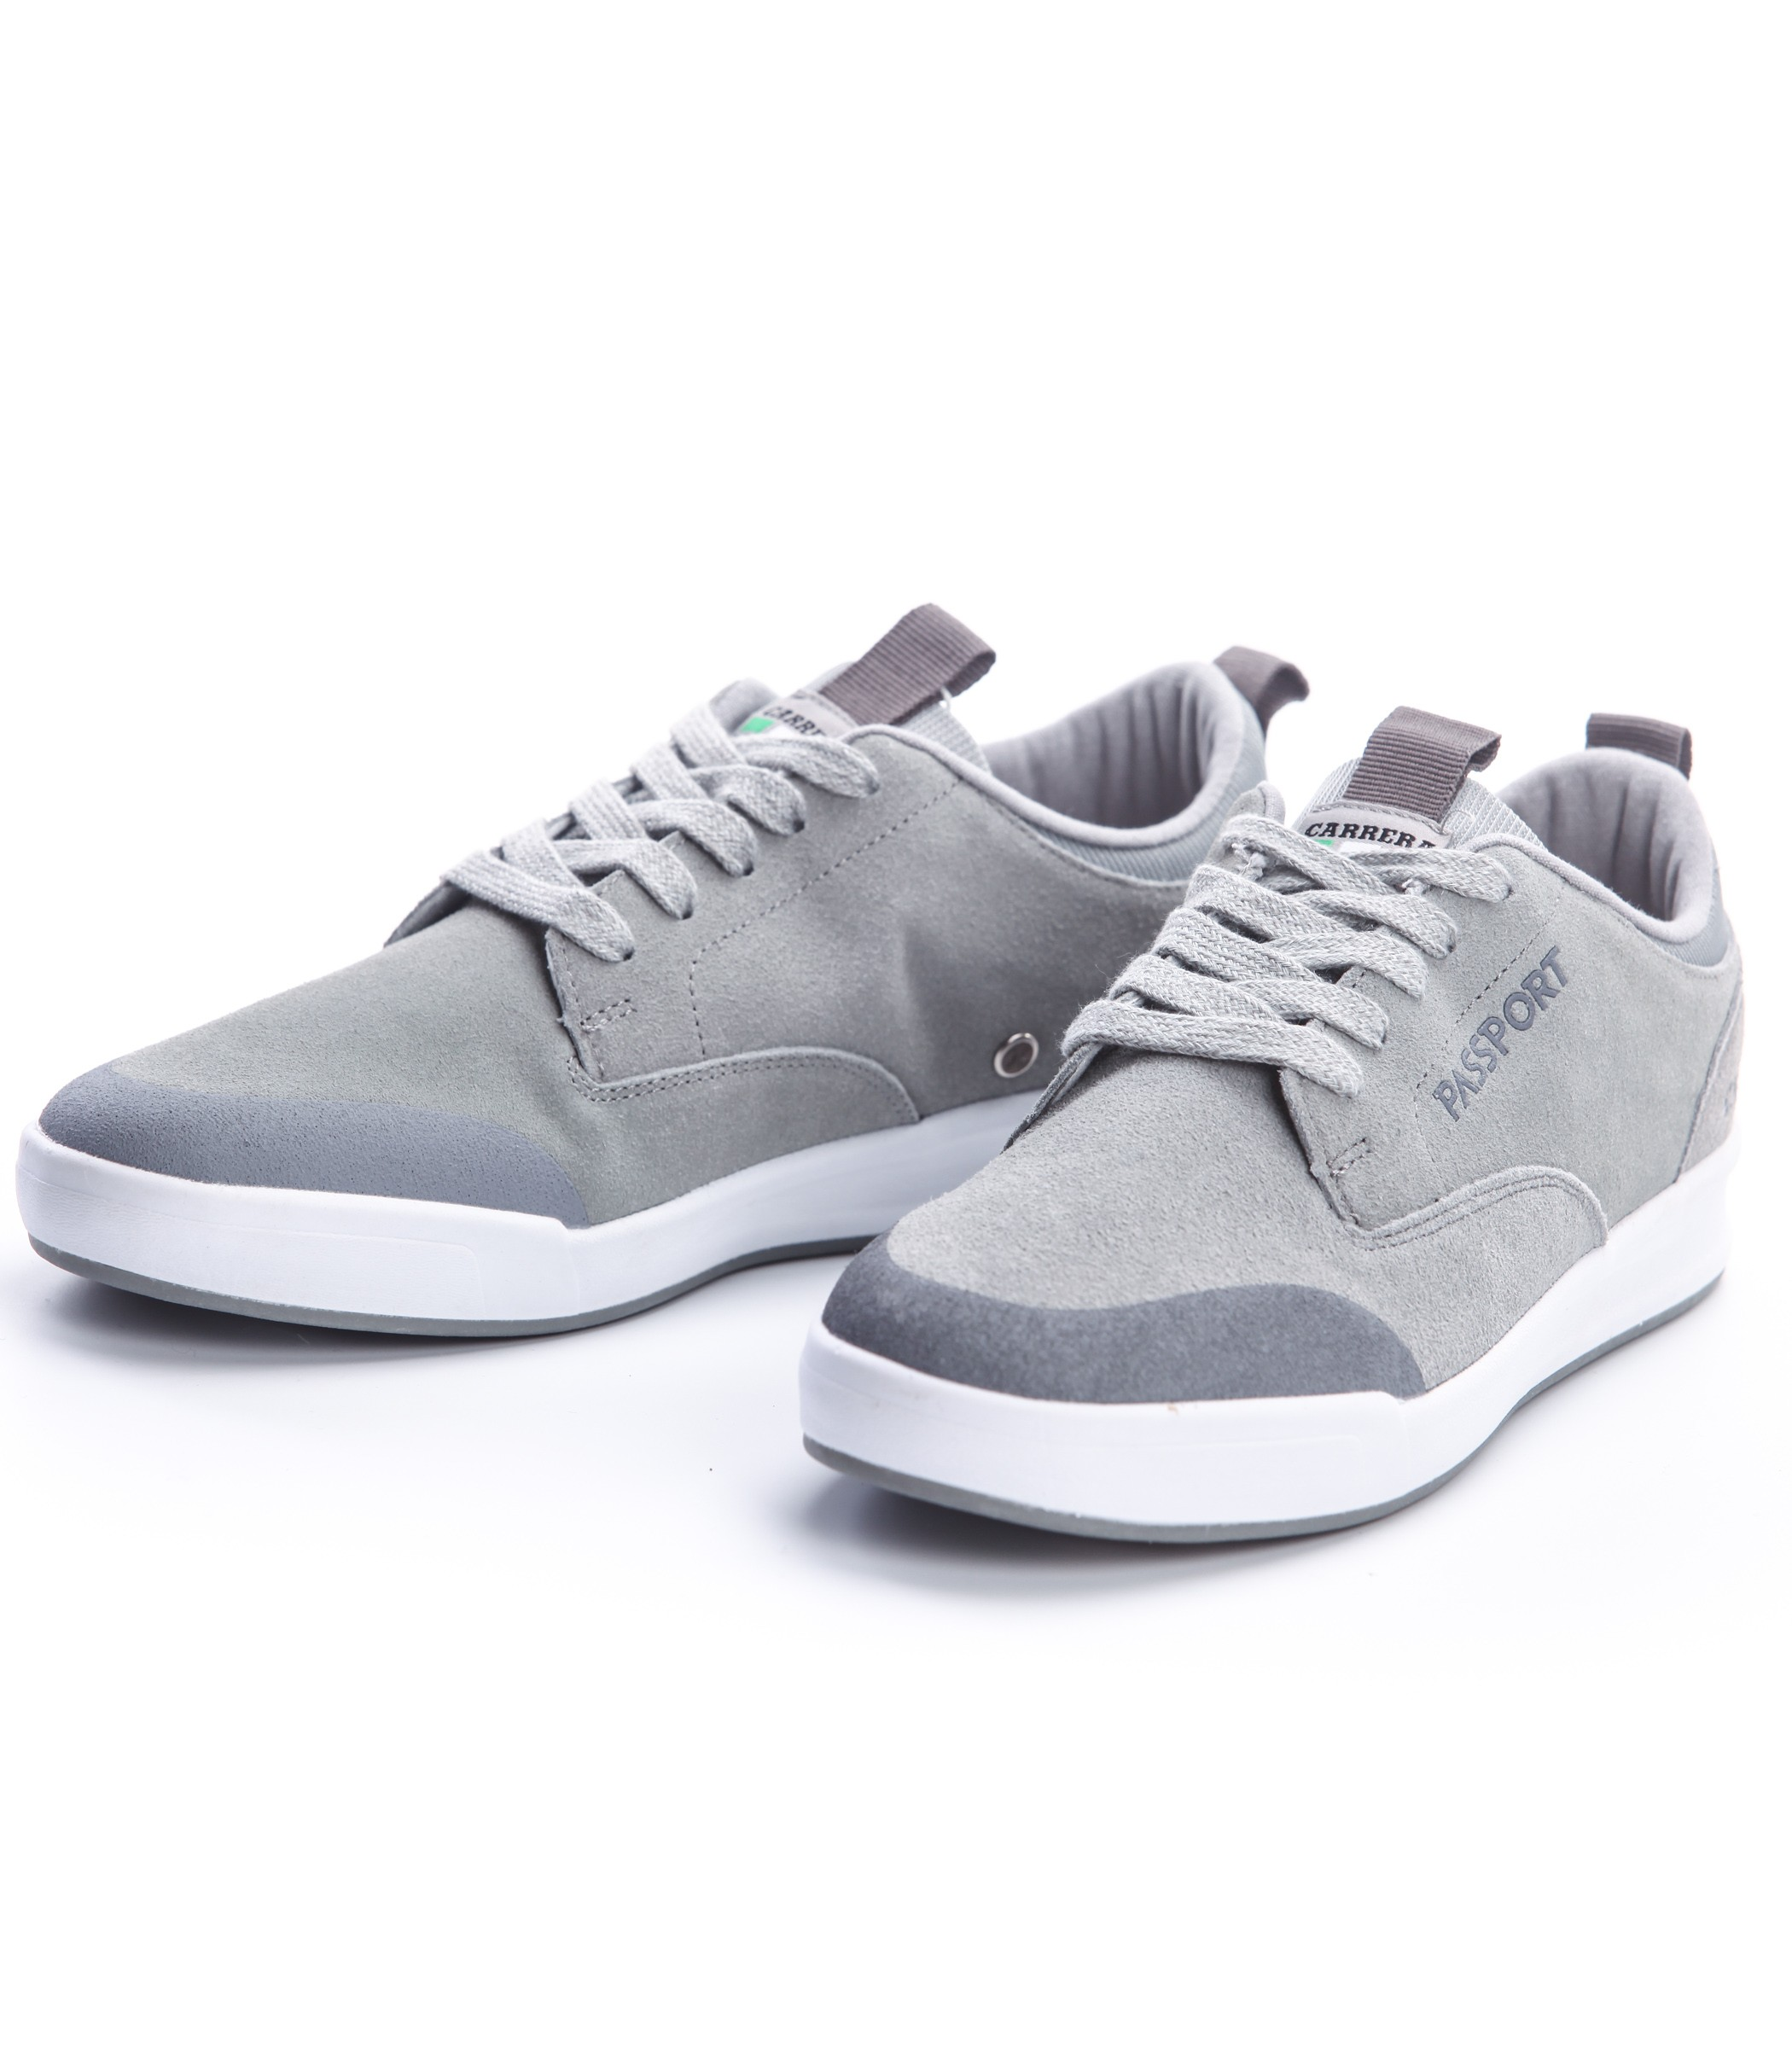 the latest 961aa 1c1a4 CAM917505 Scarpe Sneakers Carrera casual da uomo rif.